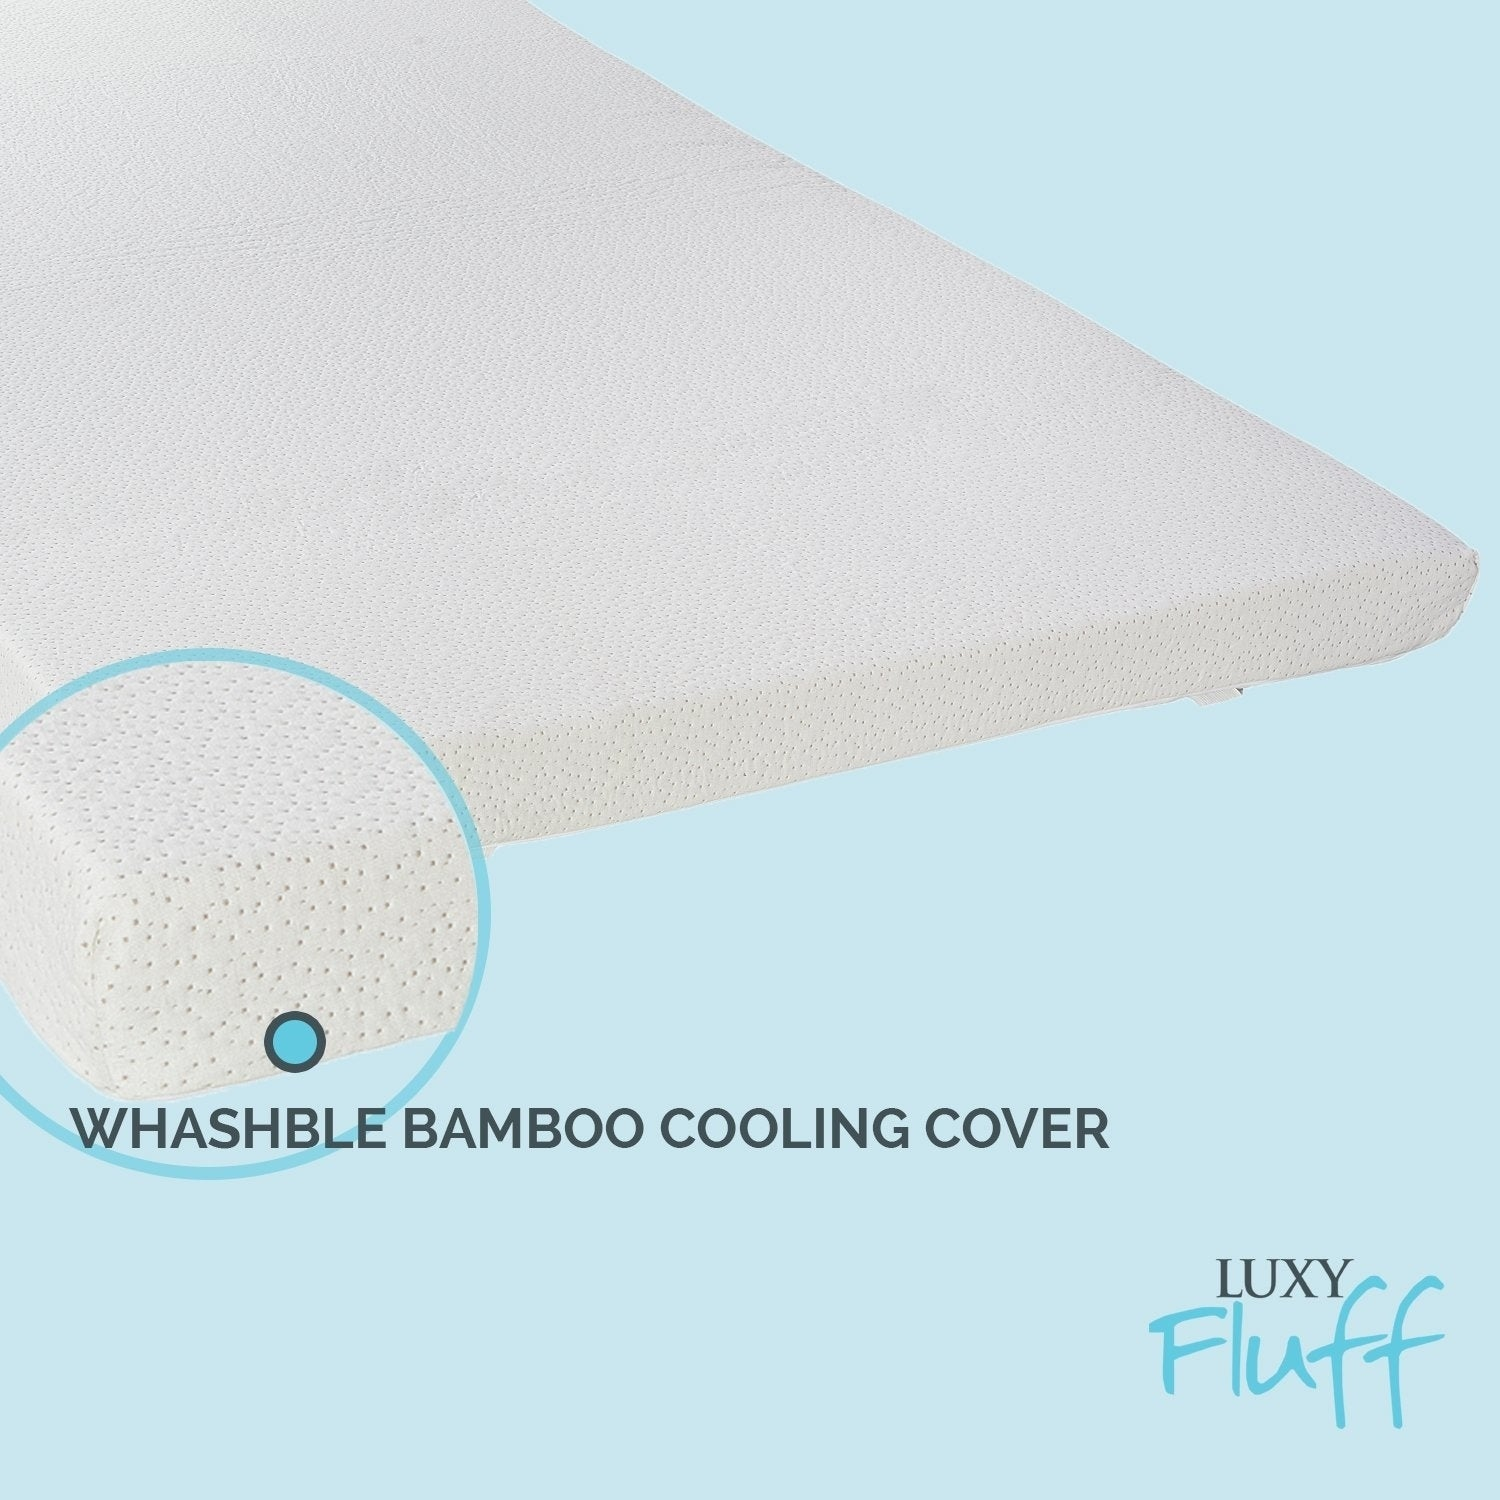 3 Inch Gel-Infused Memory Foam Mattress Topper Cooling Bamboo Removable Cover